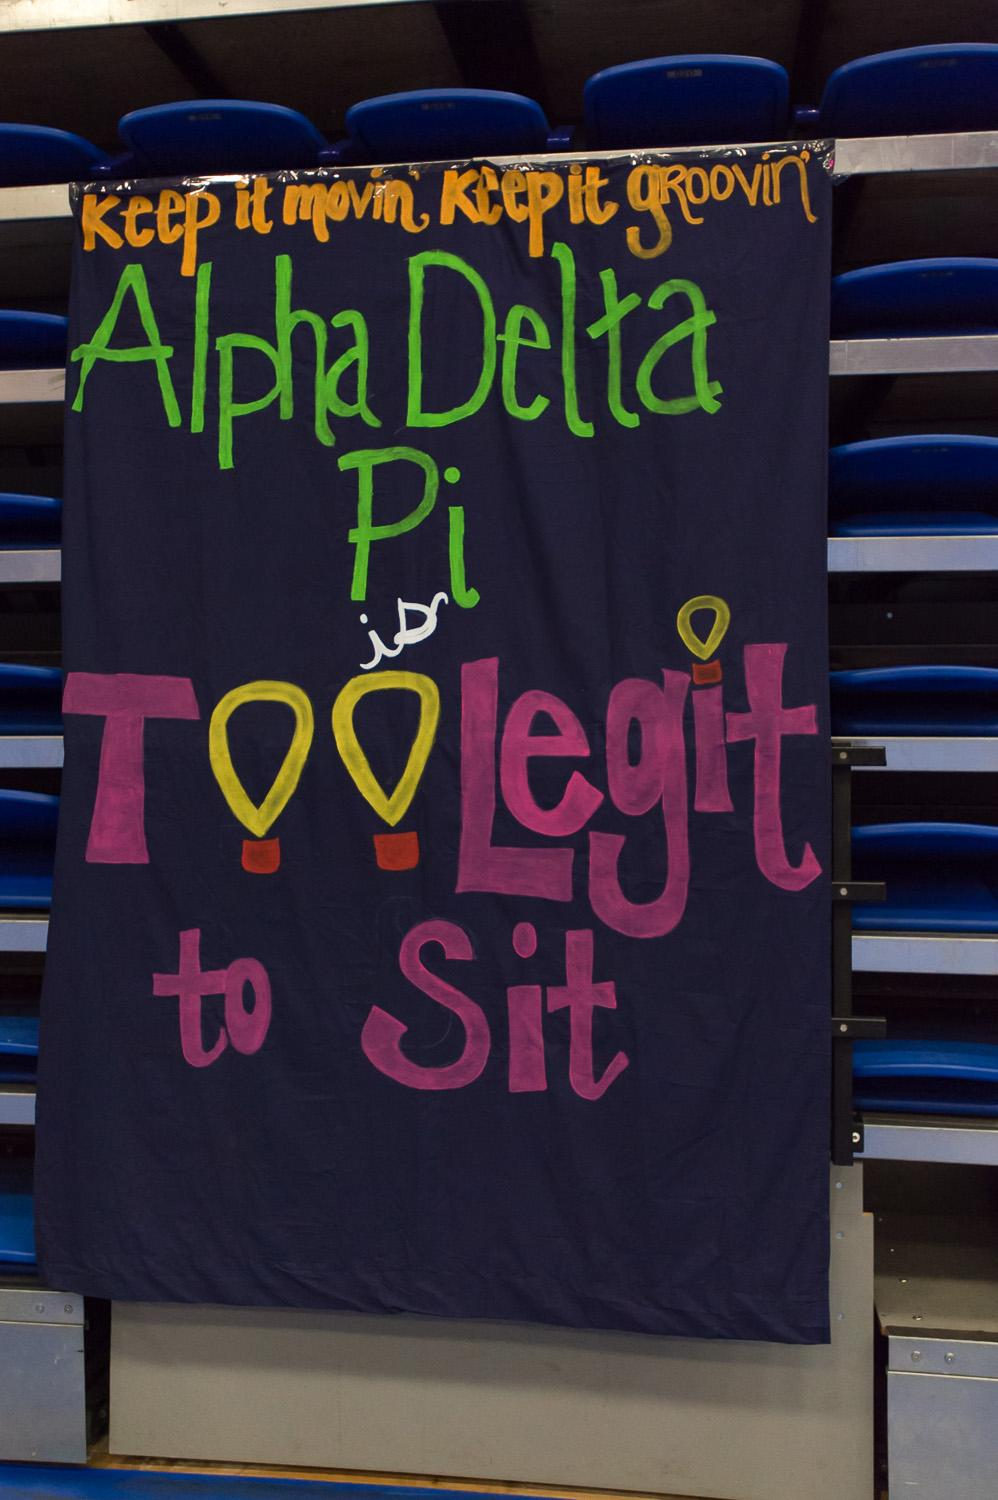 %5BMax+Jackson++%7C++Photo+Editor%5D+++++++++++++++Fraternities+and+sororities%2C+like+Alpha+Delta+Pi%2C+showed+support+for+the+dance+by+donating+money+and+reminding+students+of+the+Dance+Marathon+Motto%3A+%22Too+legit+to+sit.%22